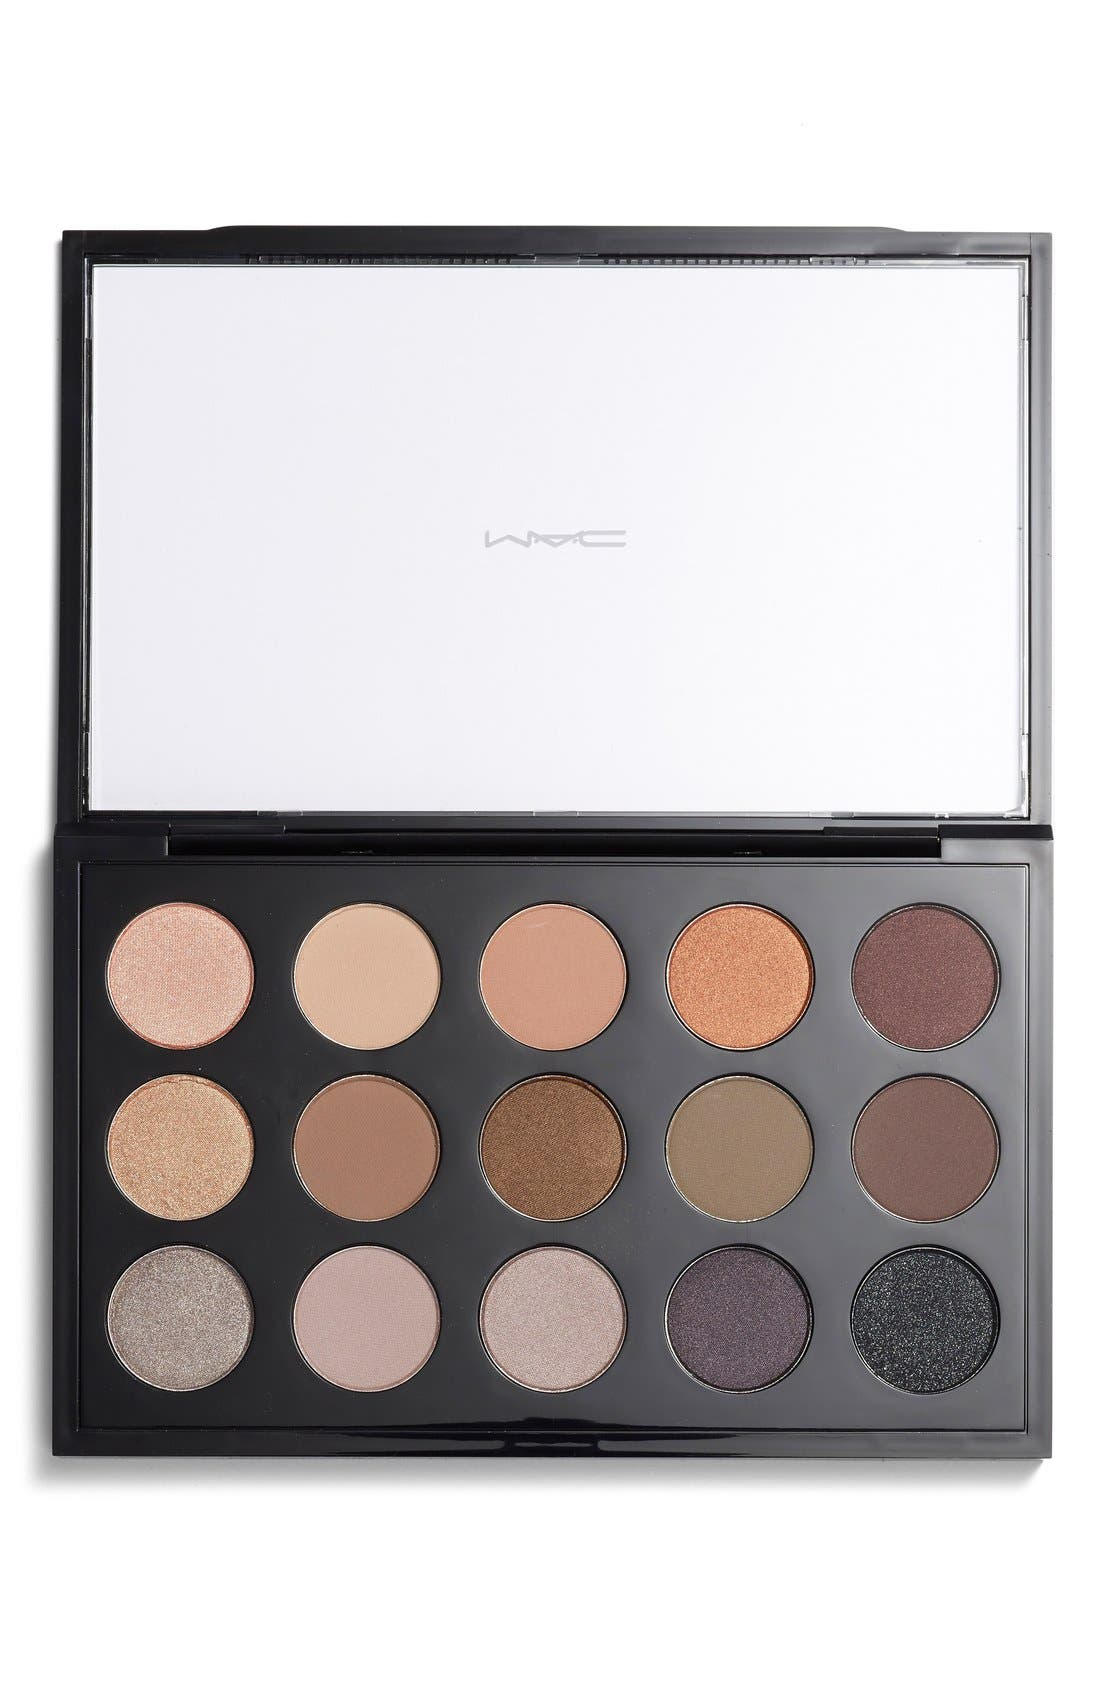 MAC COSMETICS, MAC Nordstrom Now Eyeshadow Palette, Main thumbnail 1, color, 200